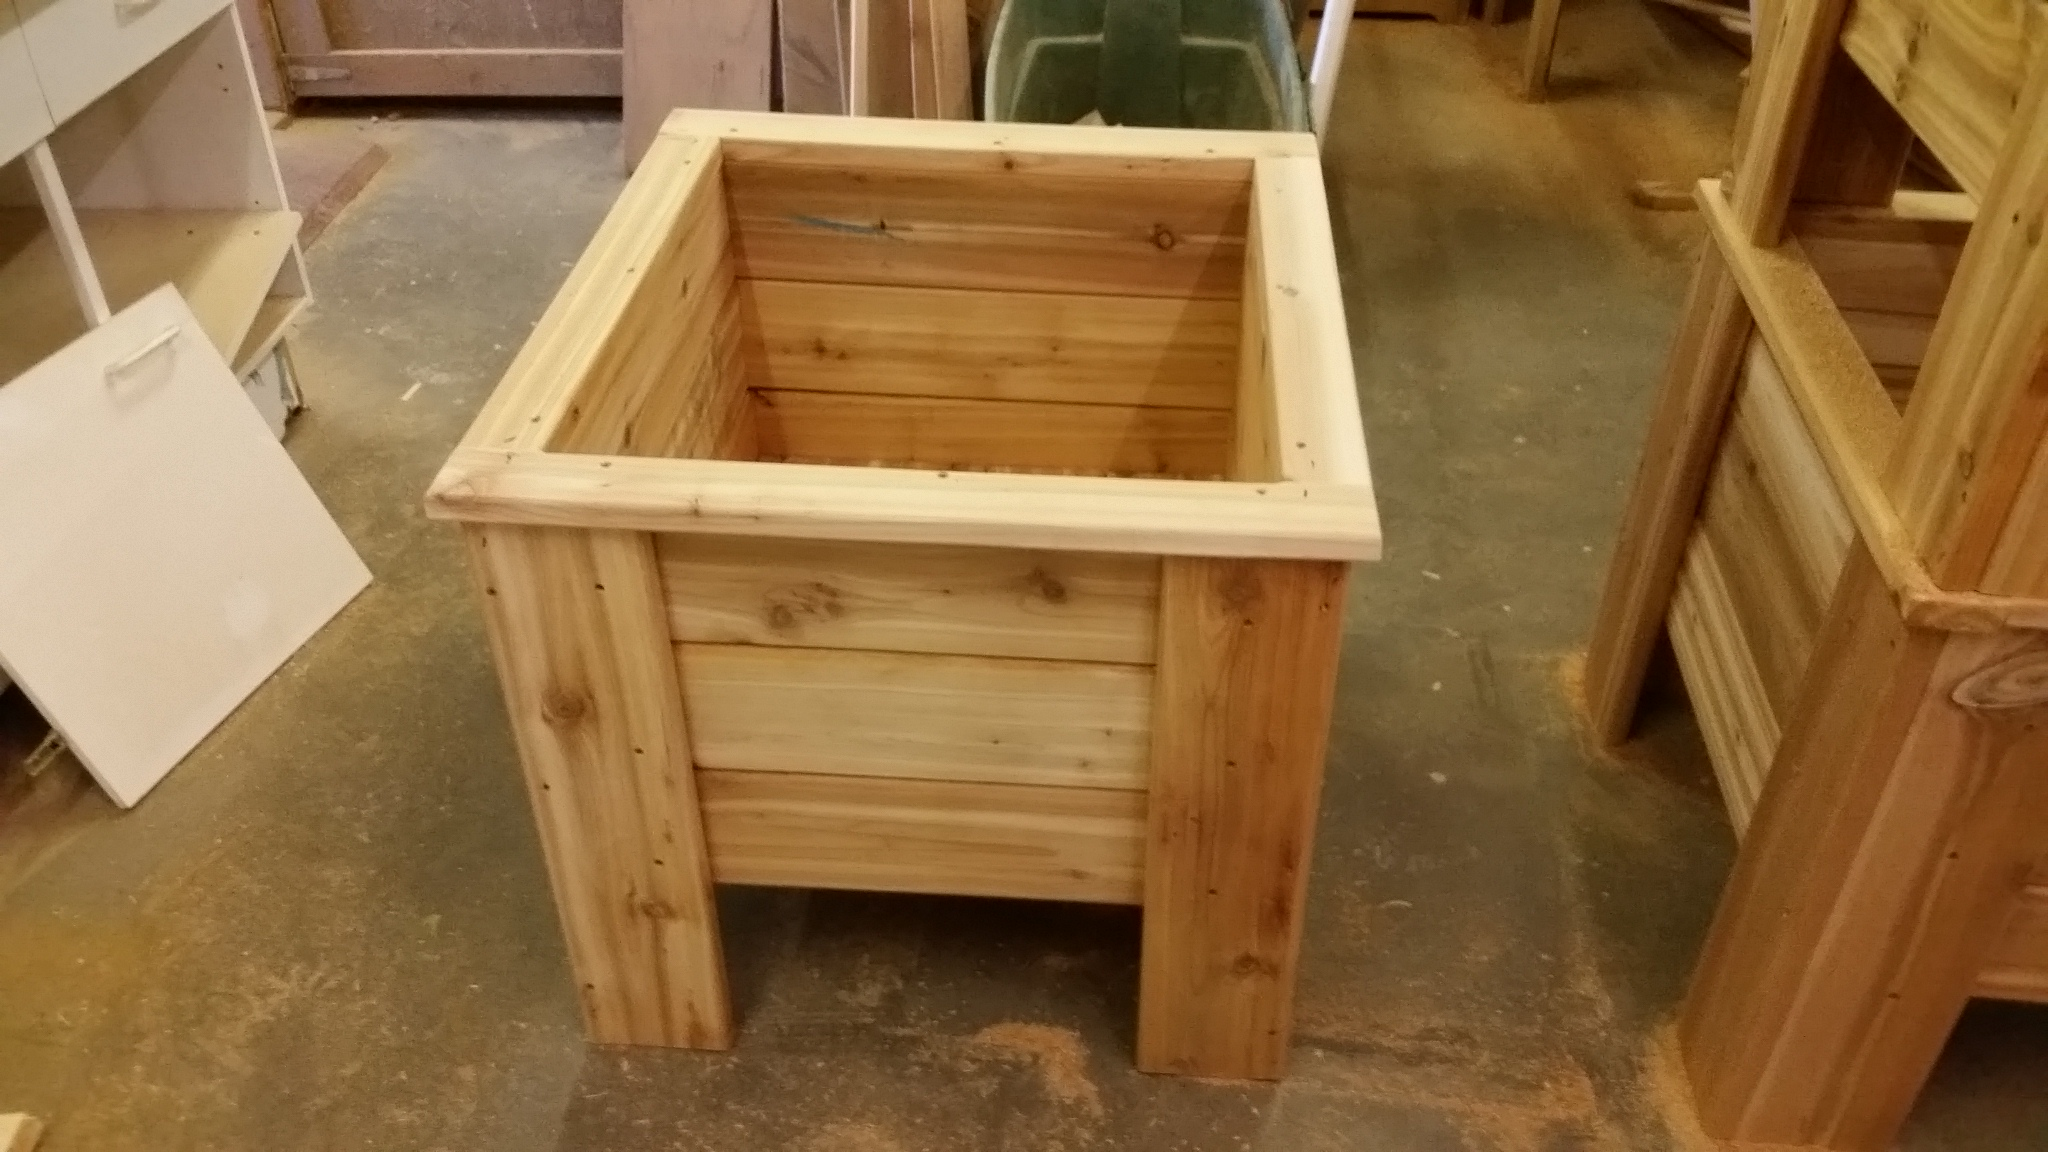 a bottom two briggs width building boxes like diy them love cedar cut that from t but one tapered measured planter the and didn so of img added pieces i wasn there to end